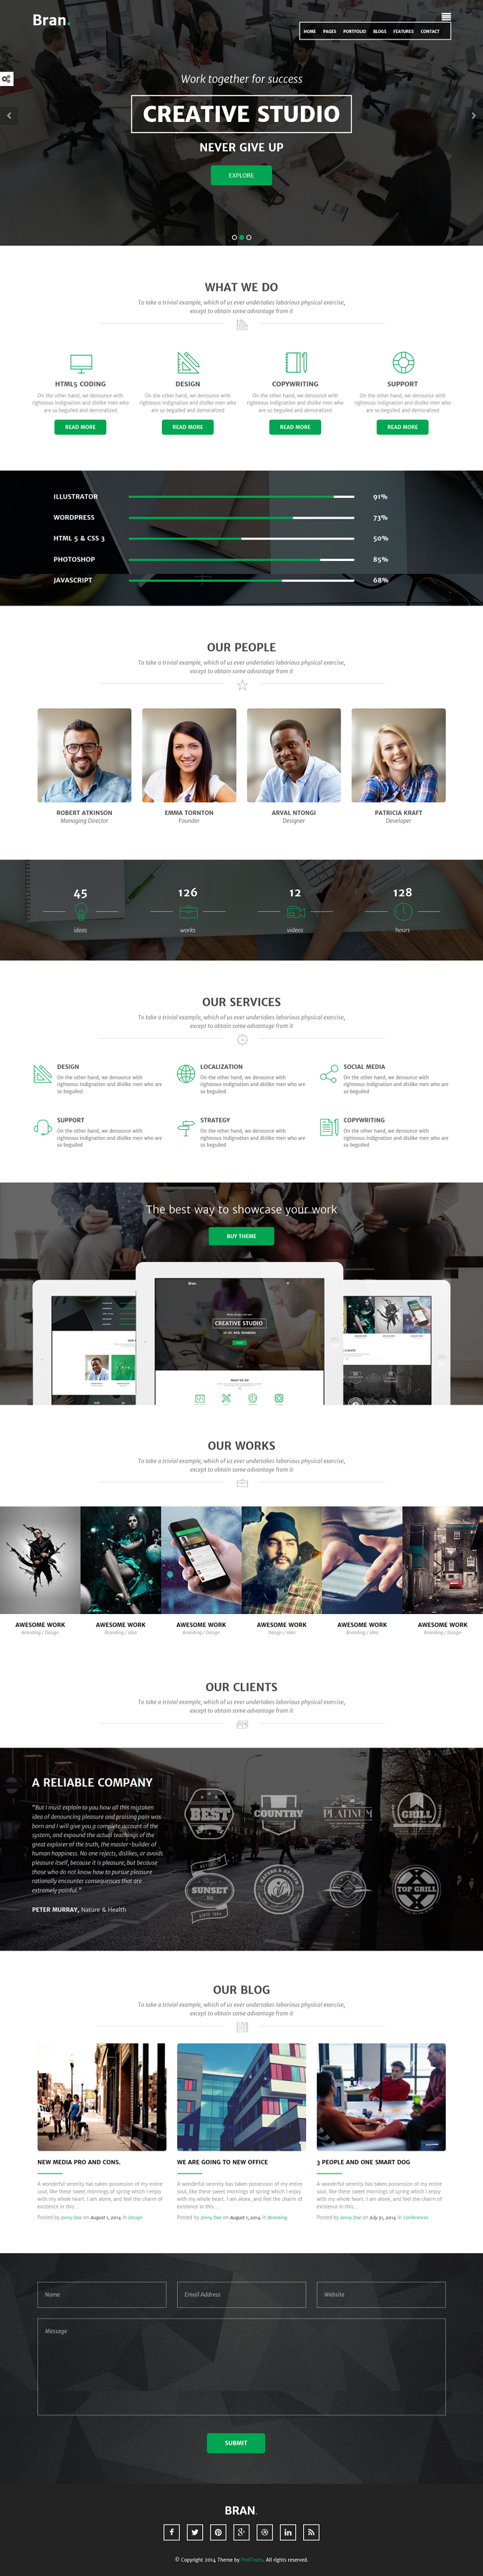 Bran is a Multi / One page WordPress Theme that fit any agency. If you have a creative design ag ...